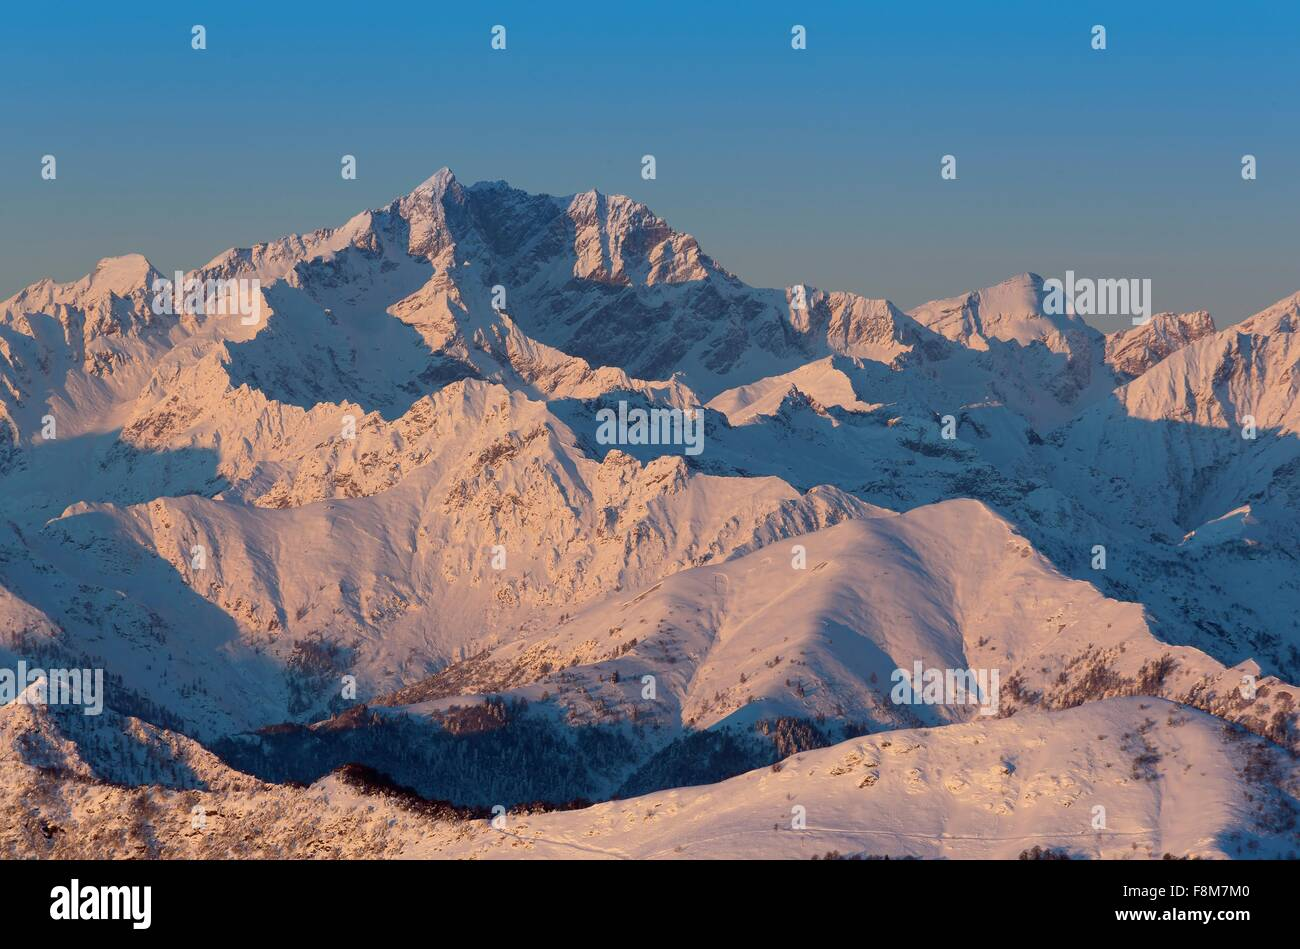 View of sunrise over Monte Rosa, Piedmont, Italy - Stock Image